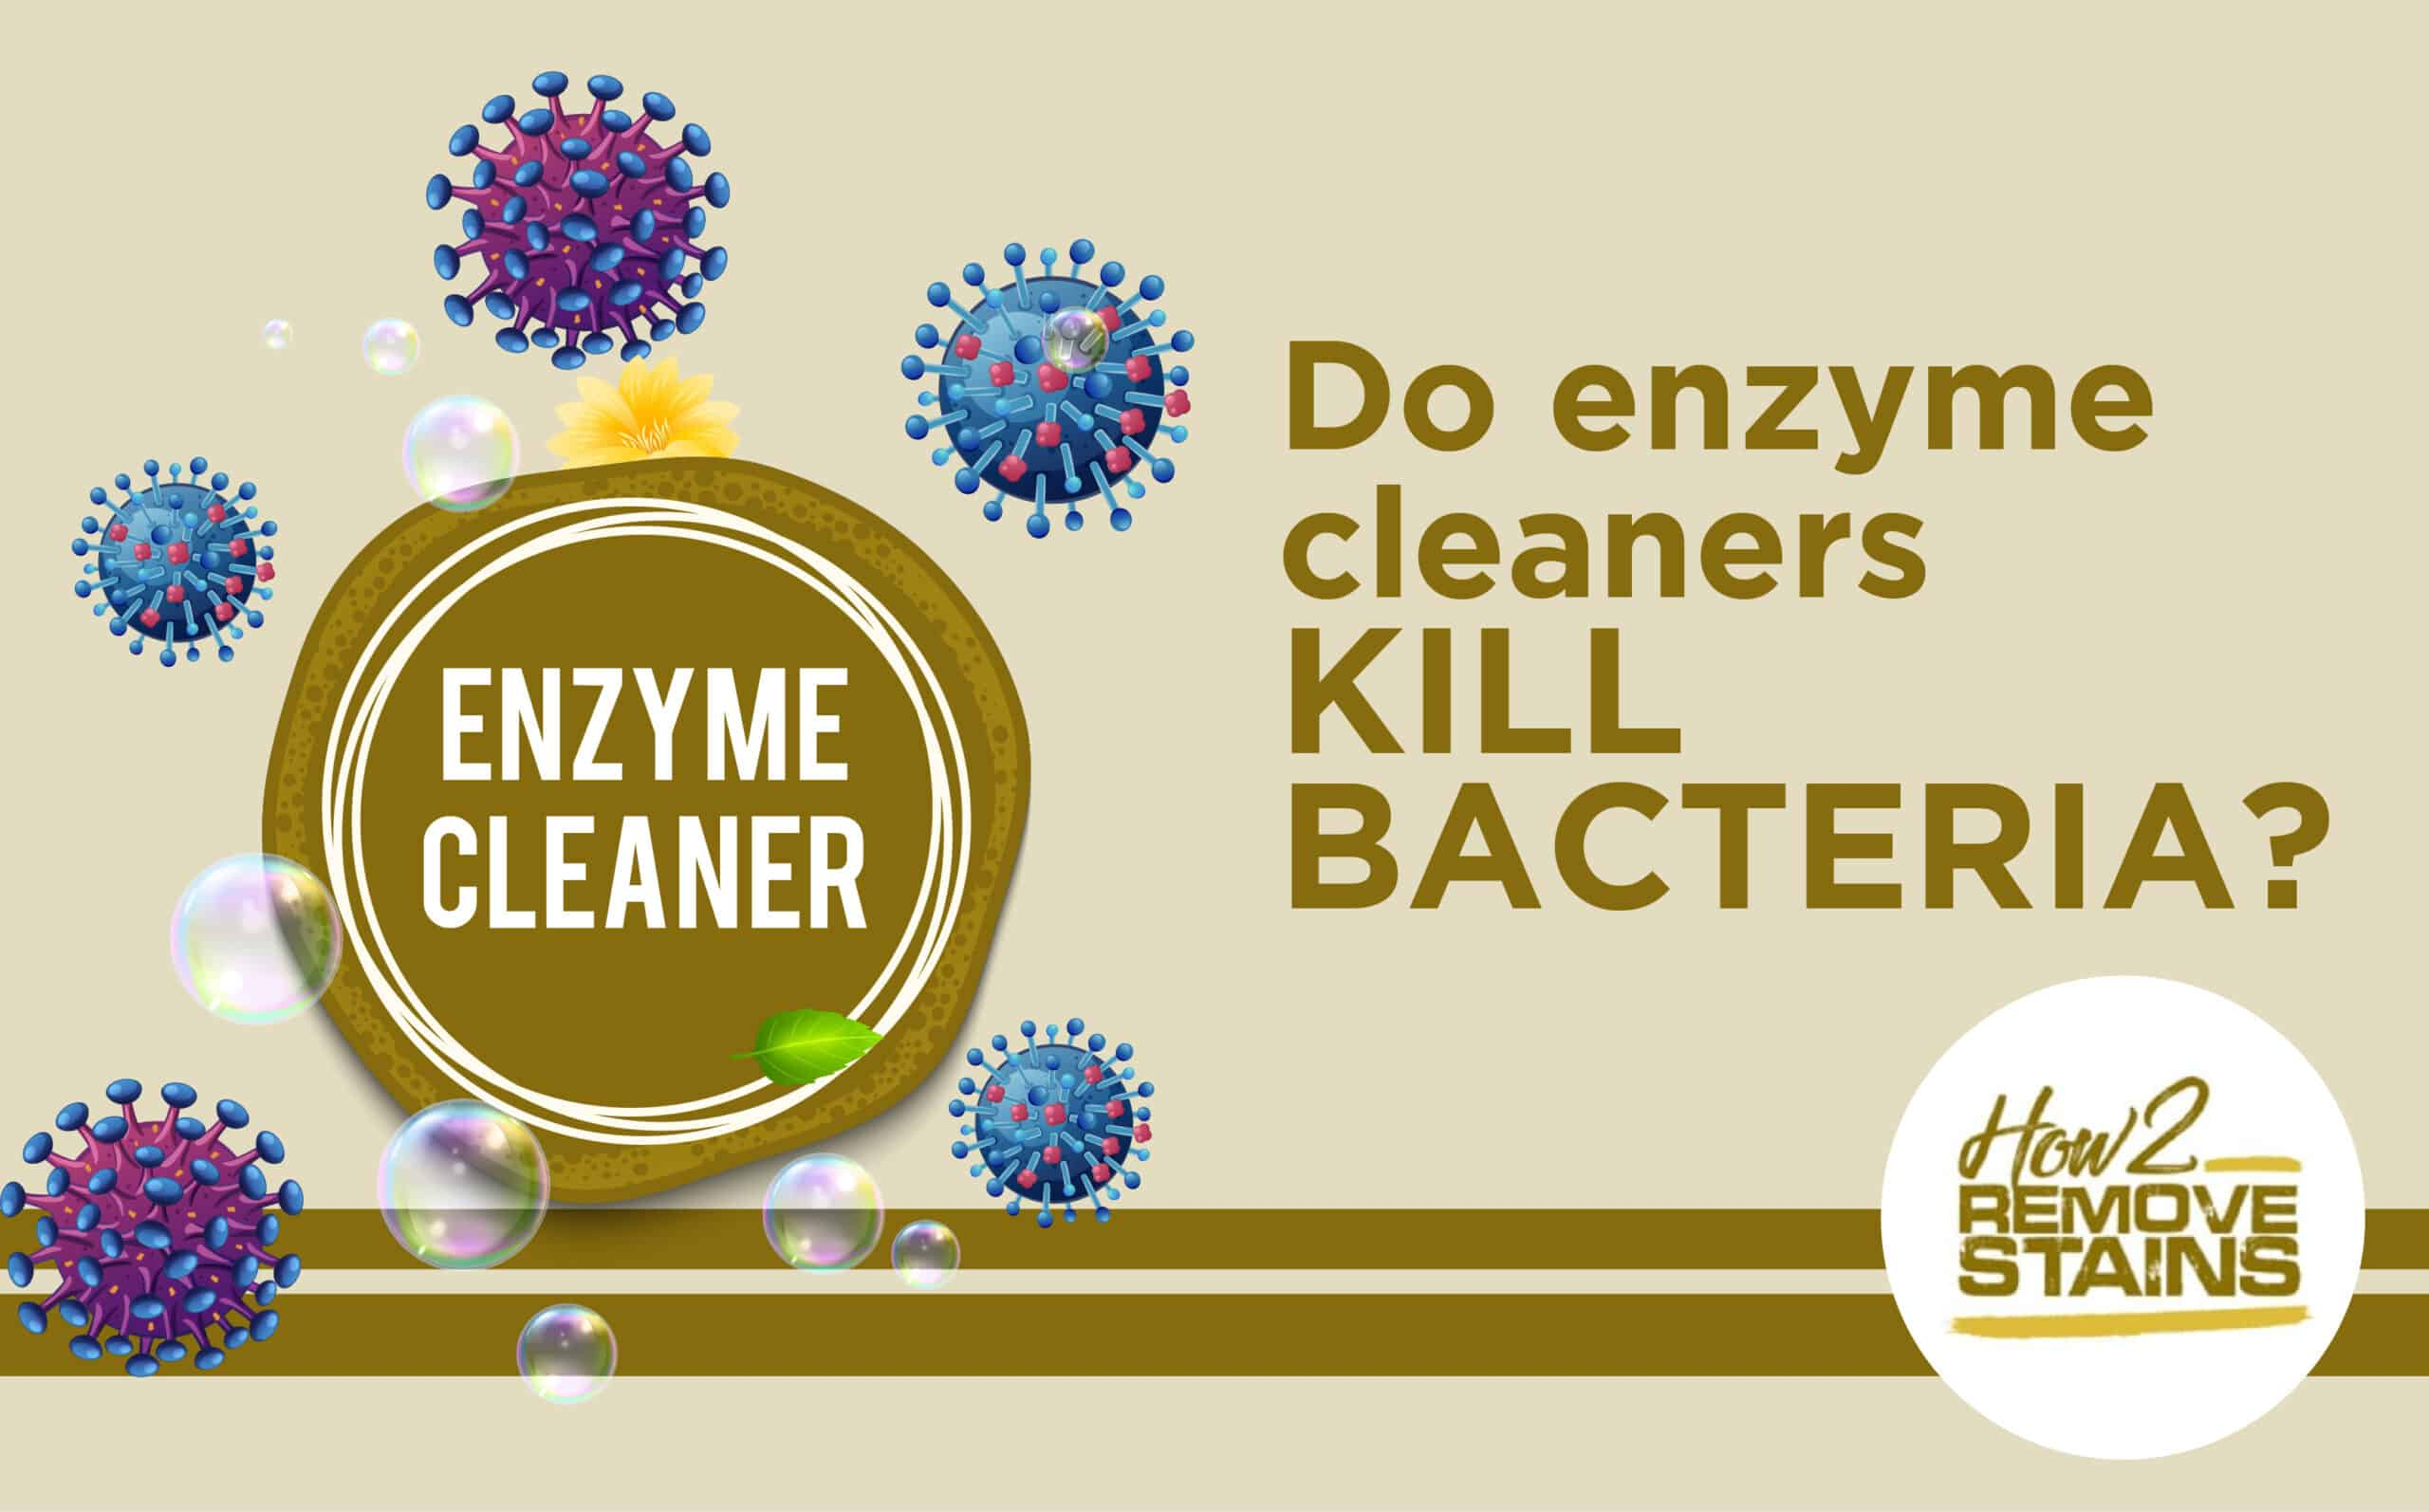 Do enzyme cleaners kill bacteria